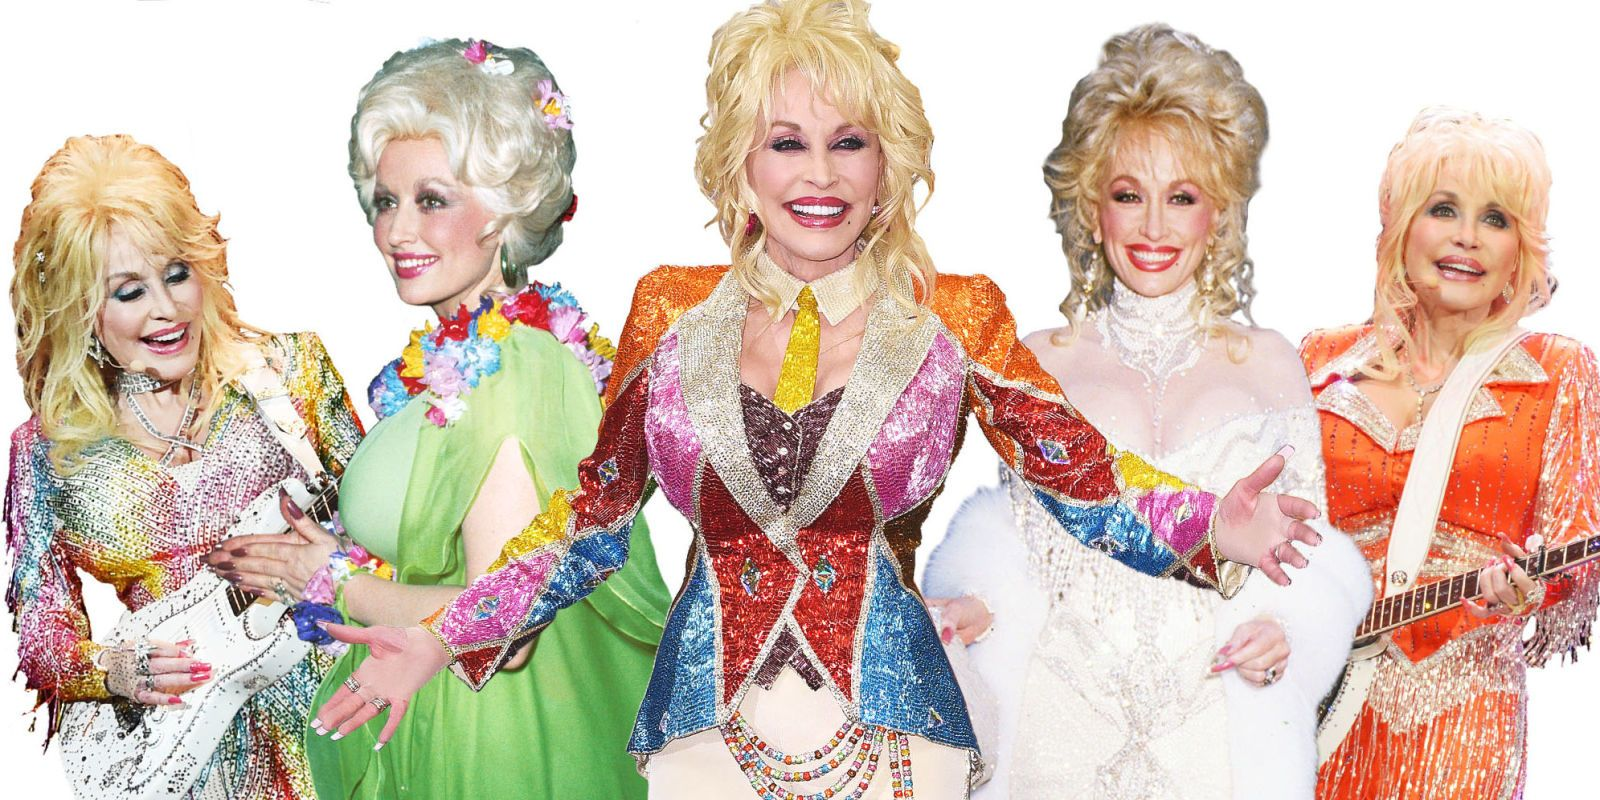 22 of Dolly Parton's Most Glorious Looks